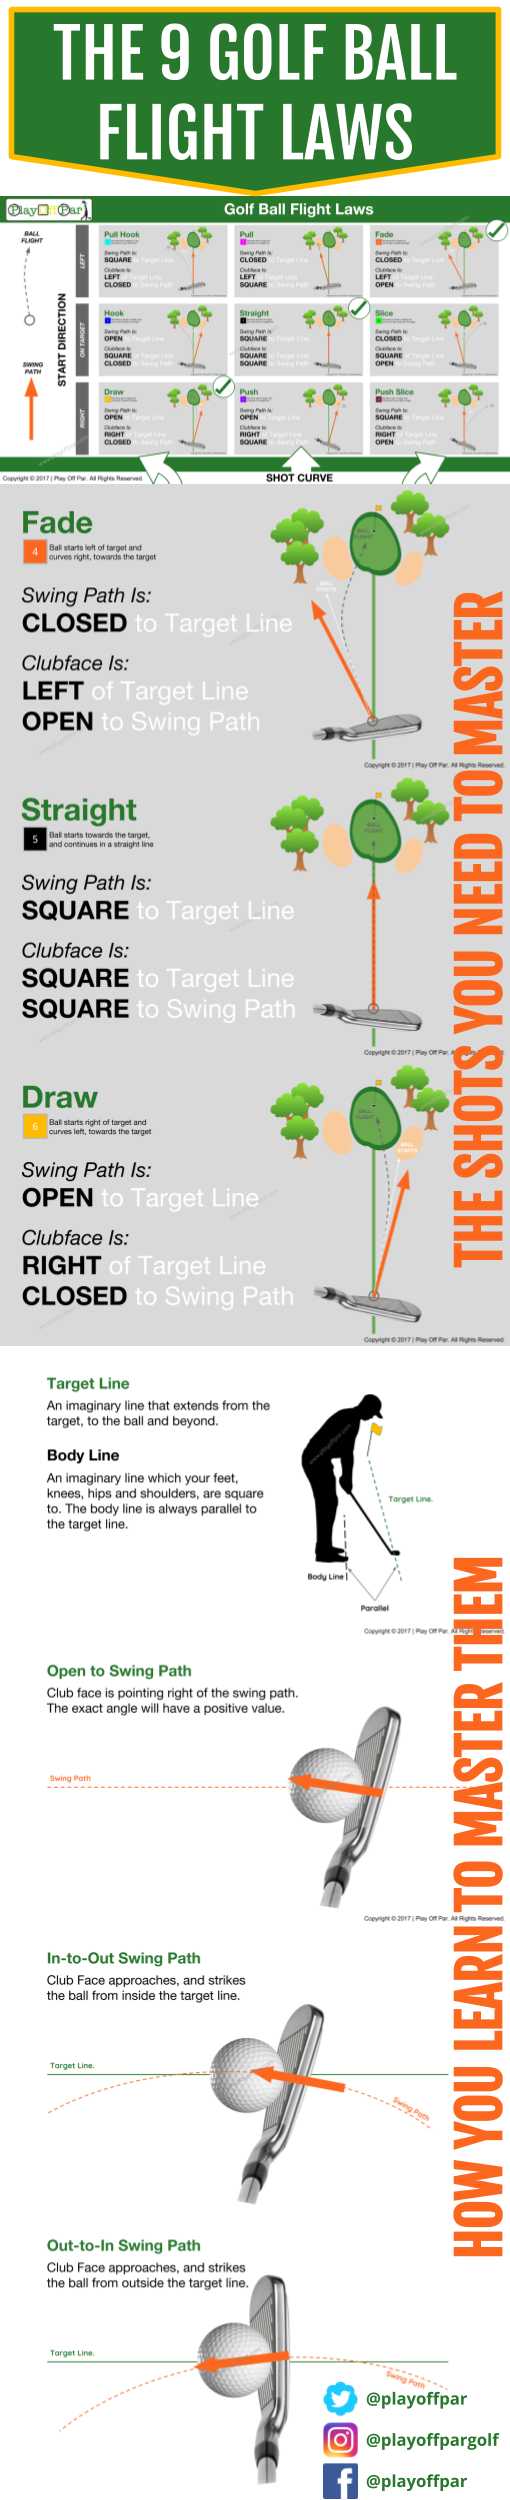 the golf ball flight laws learn how the golf ball flight laws can help you improve your golf golf ball flight too low golf ball flight too high  [ 510 x 2500 Pixel ]